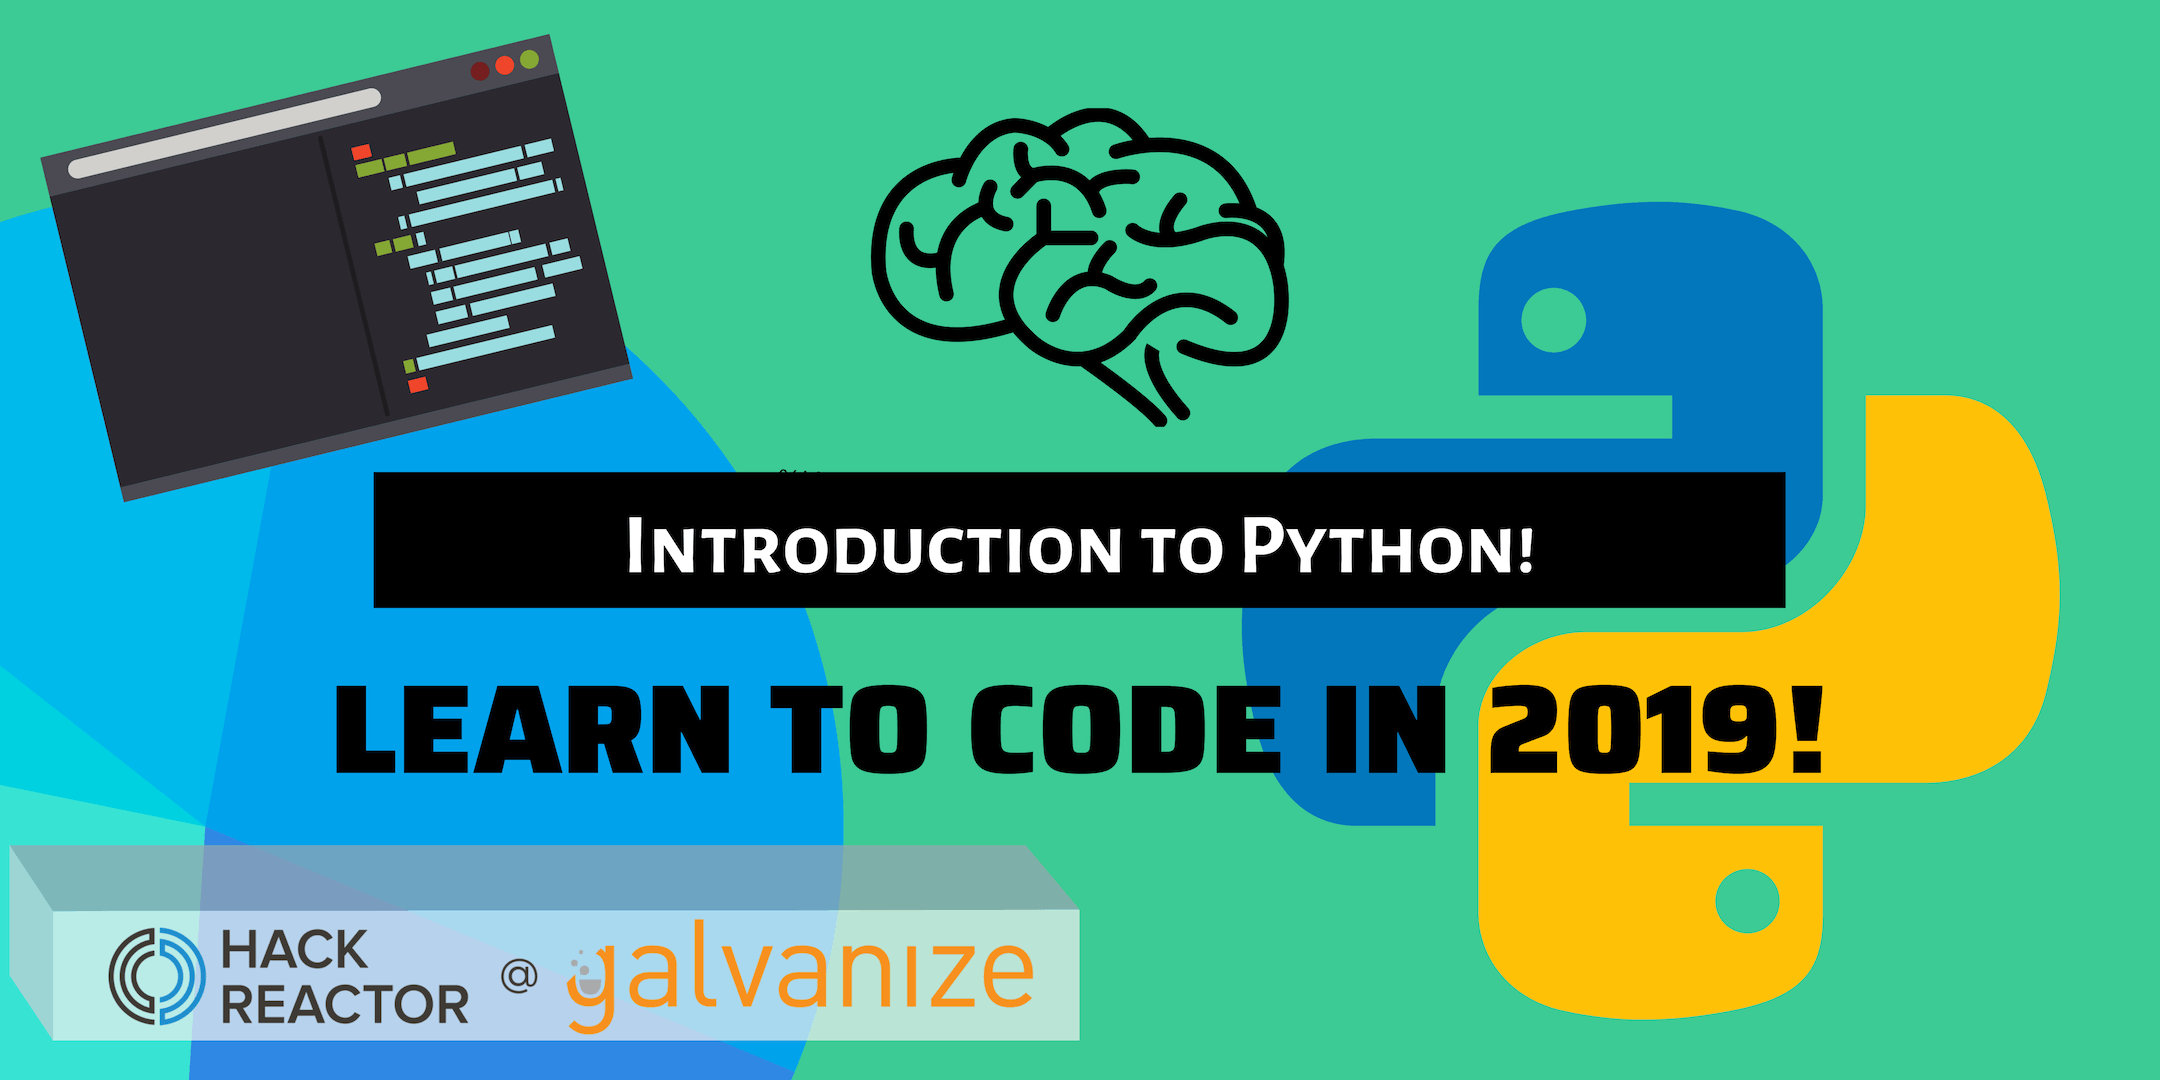 Learn to Code! Introduction to Python